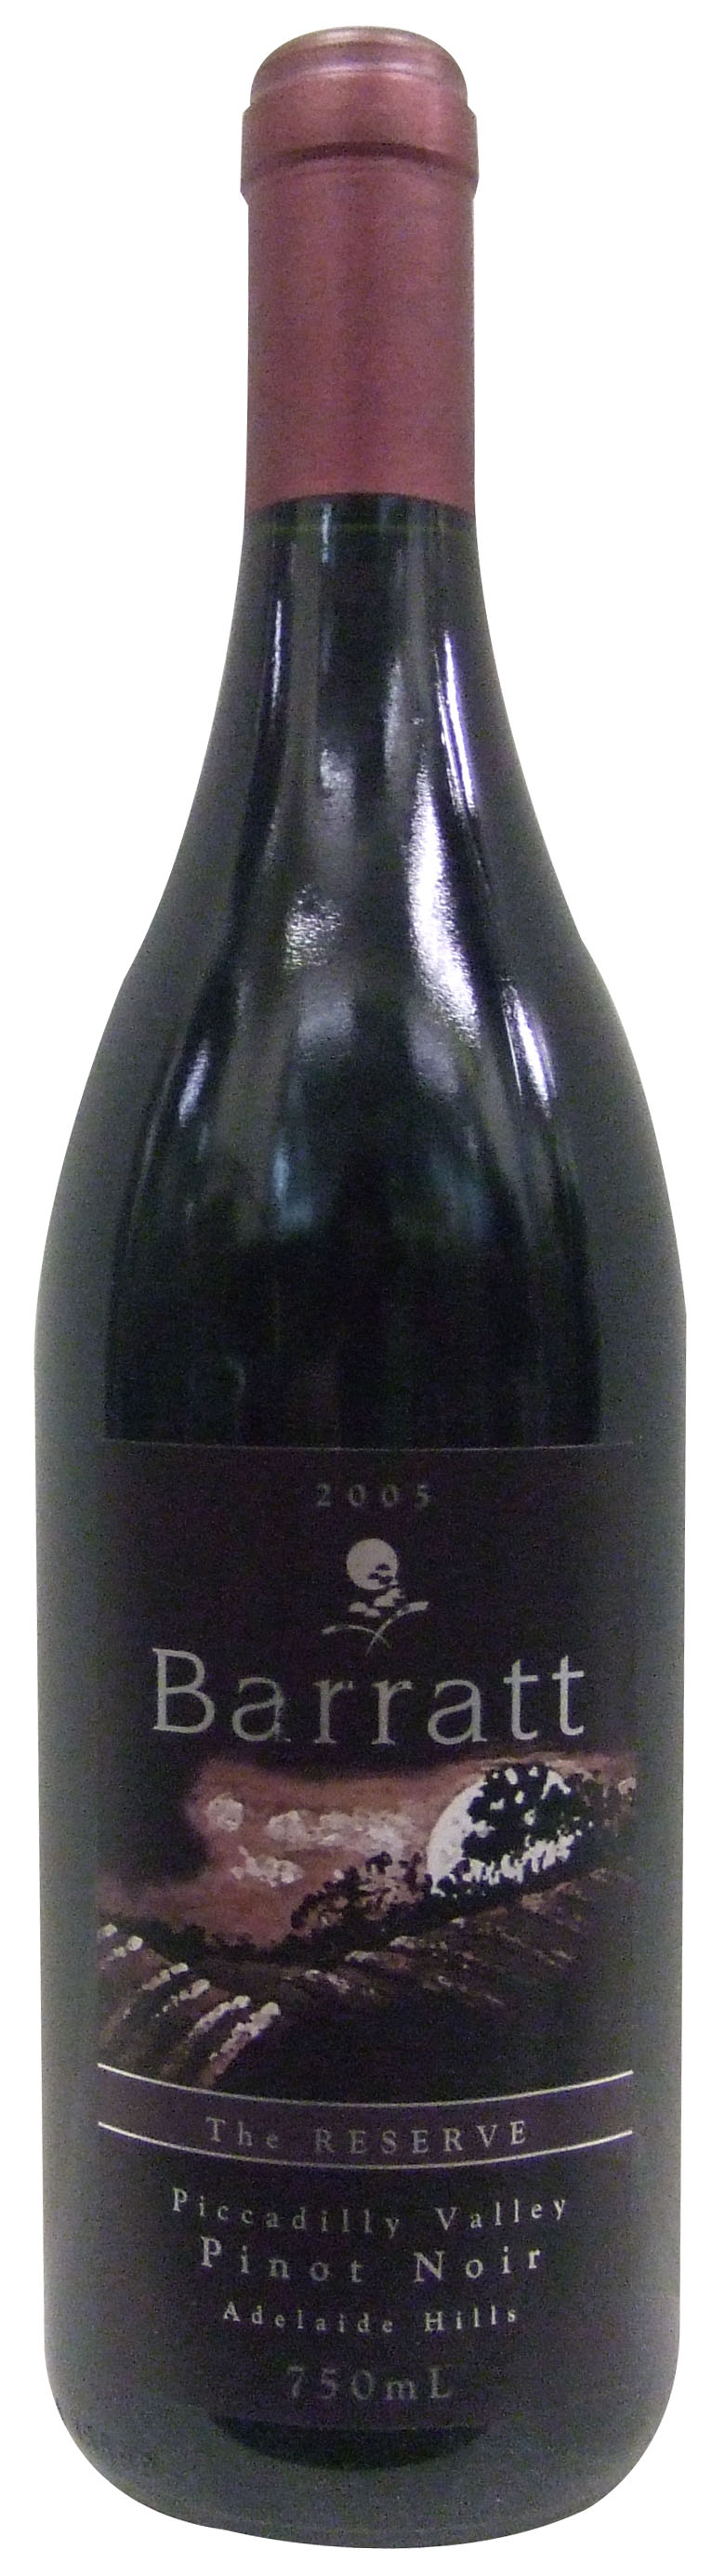 Barratt the reserve pinot noir 2005.jpg